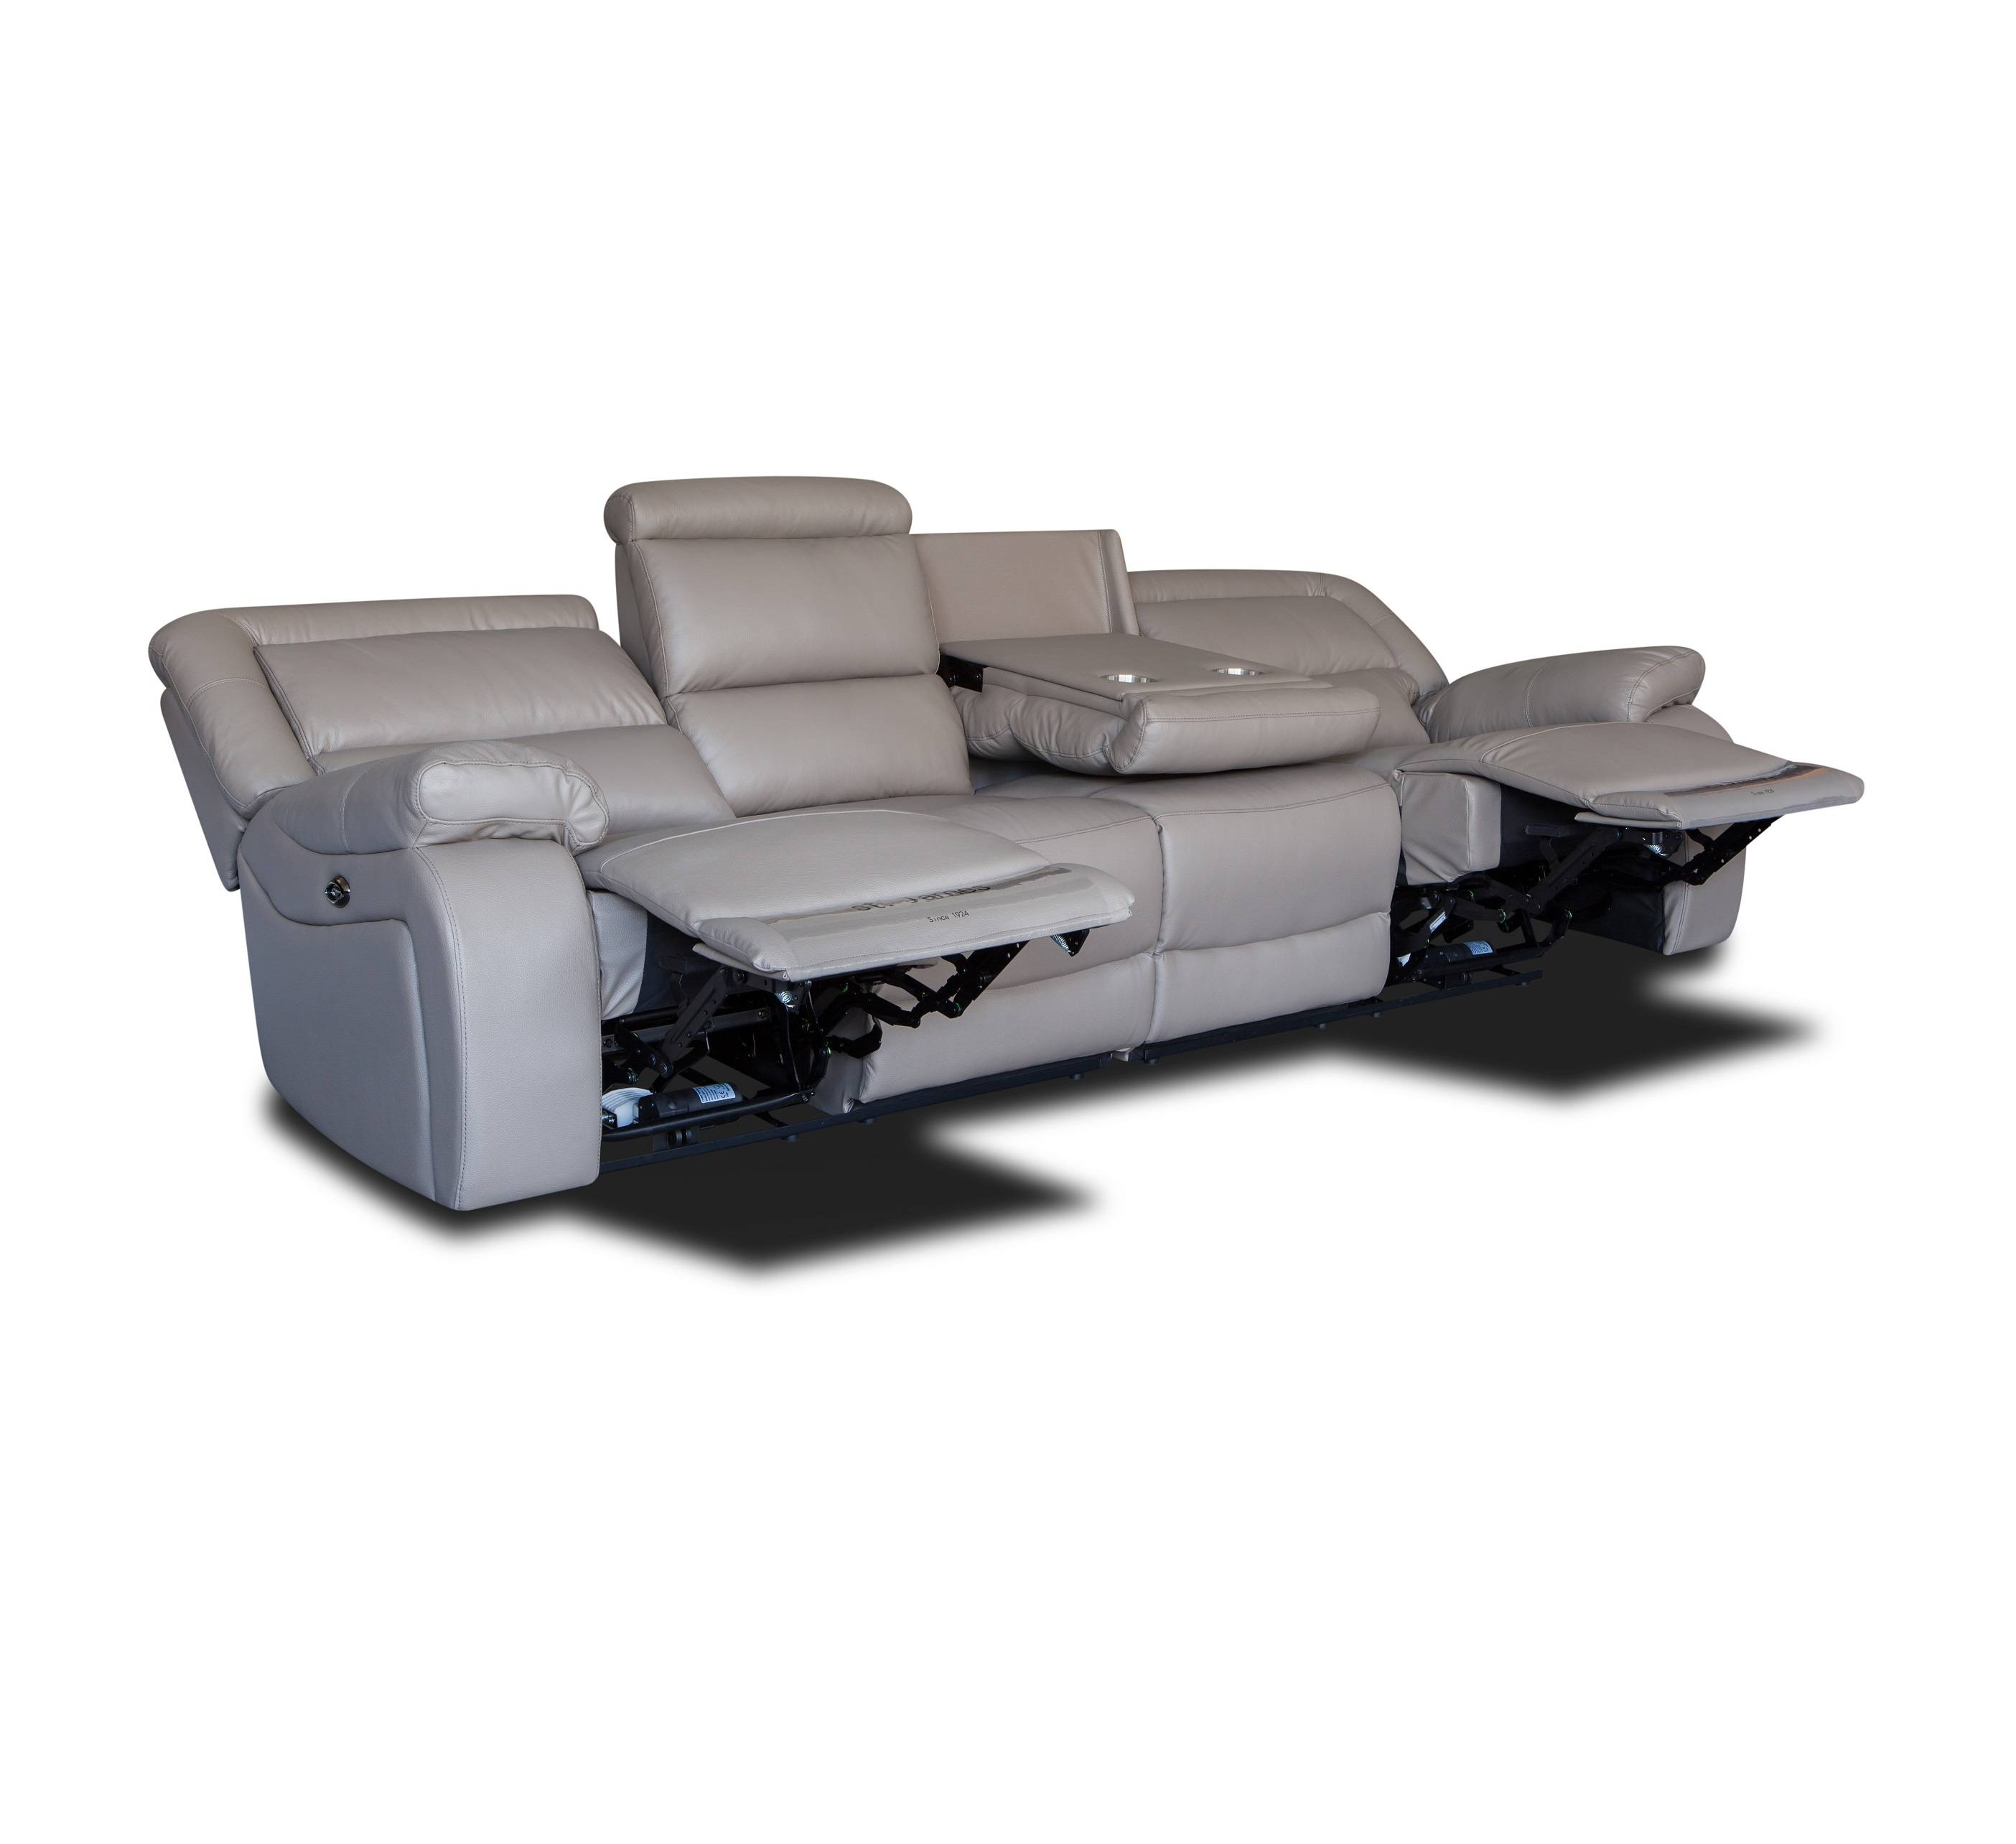 European style top grain leather 4 seater recliner sofa set with cup holder